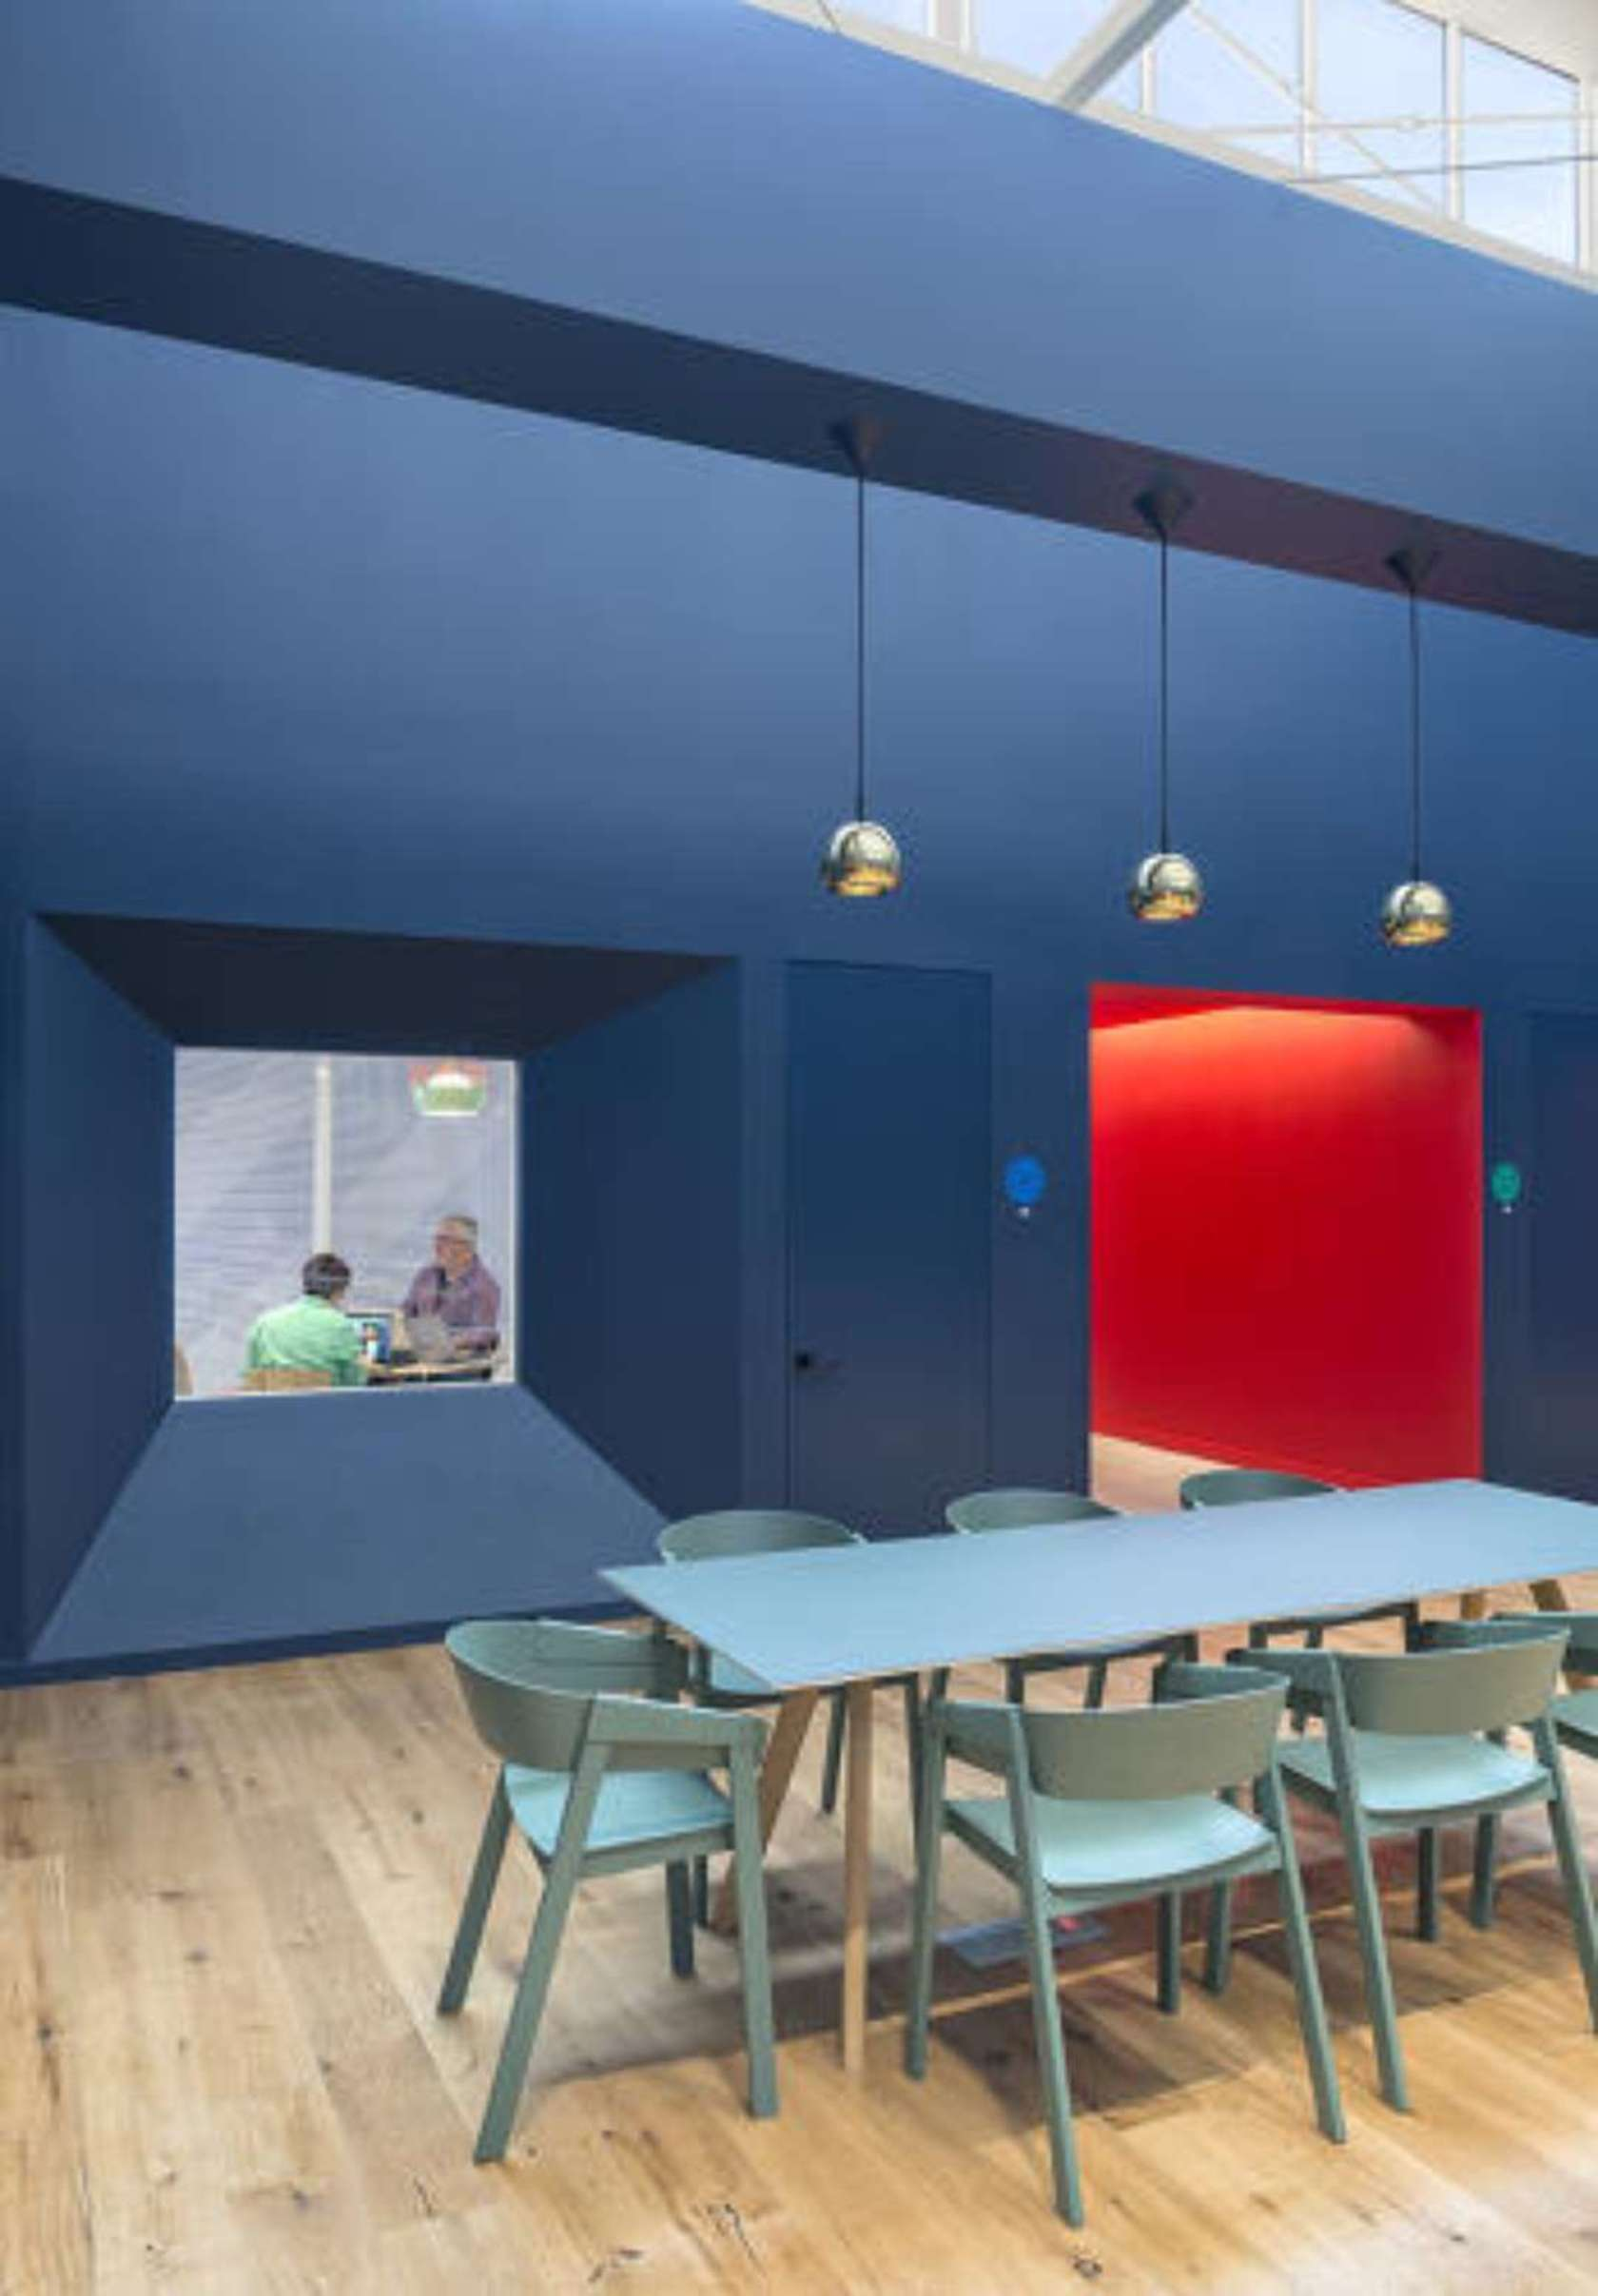 beats by dr dre headquarters on architizer beats by dre office